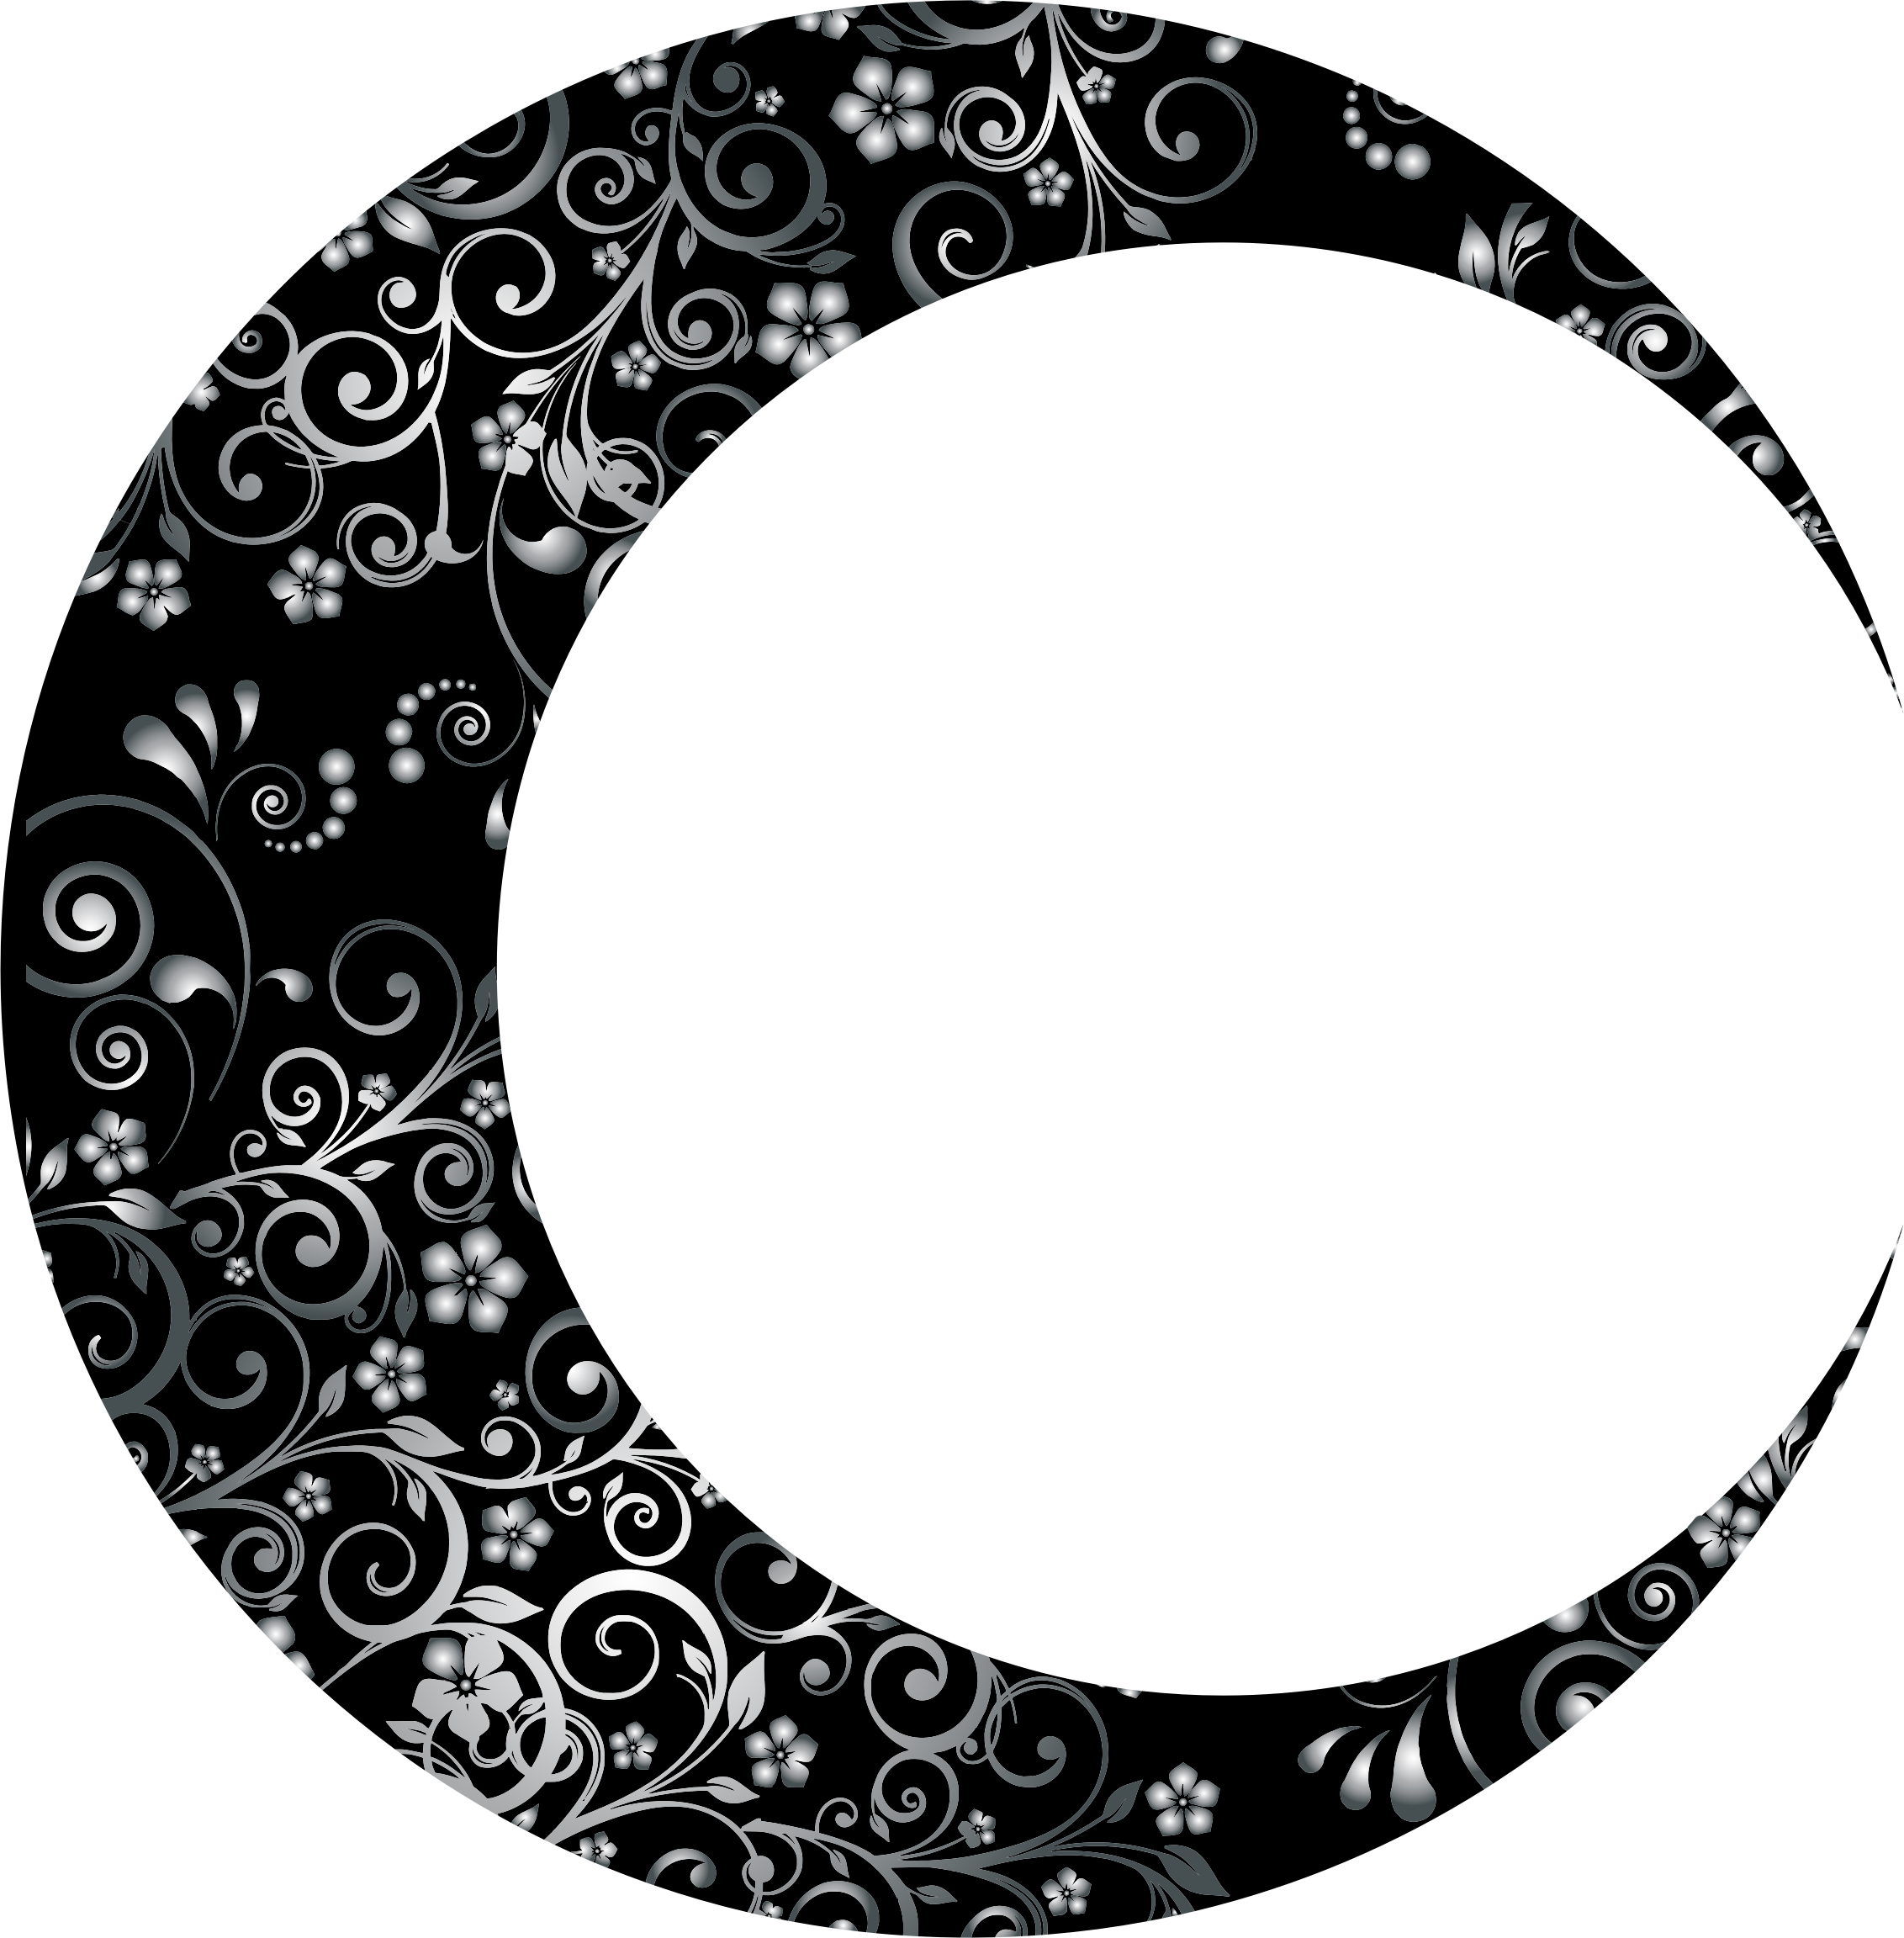 png library library Clipart moon black and white. Prismatic floral crescent mark